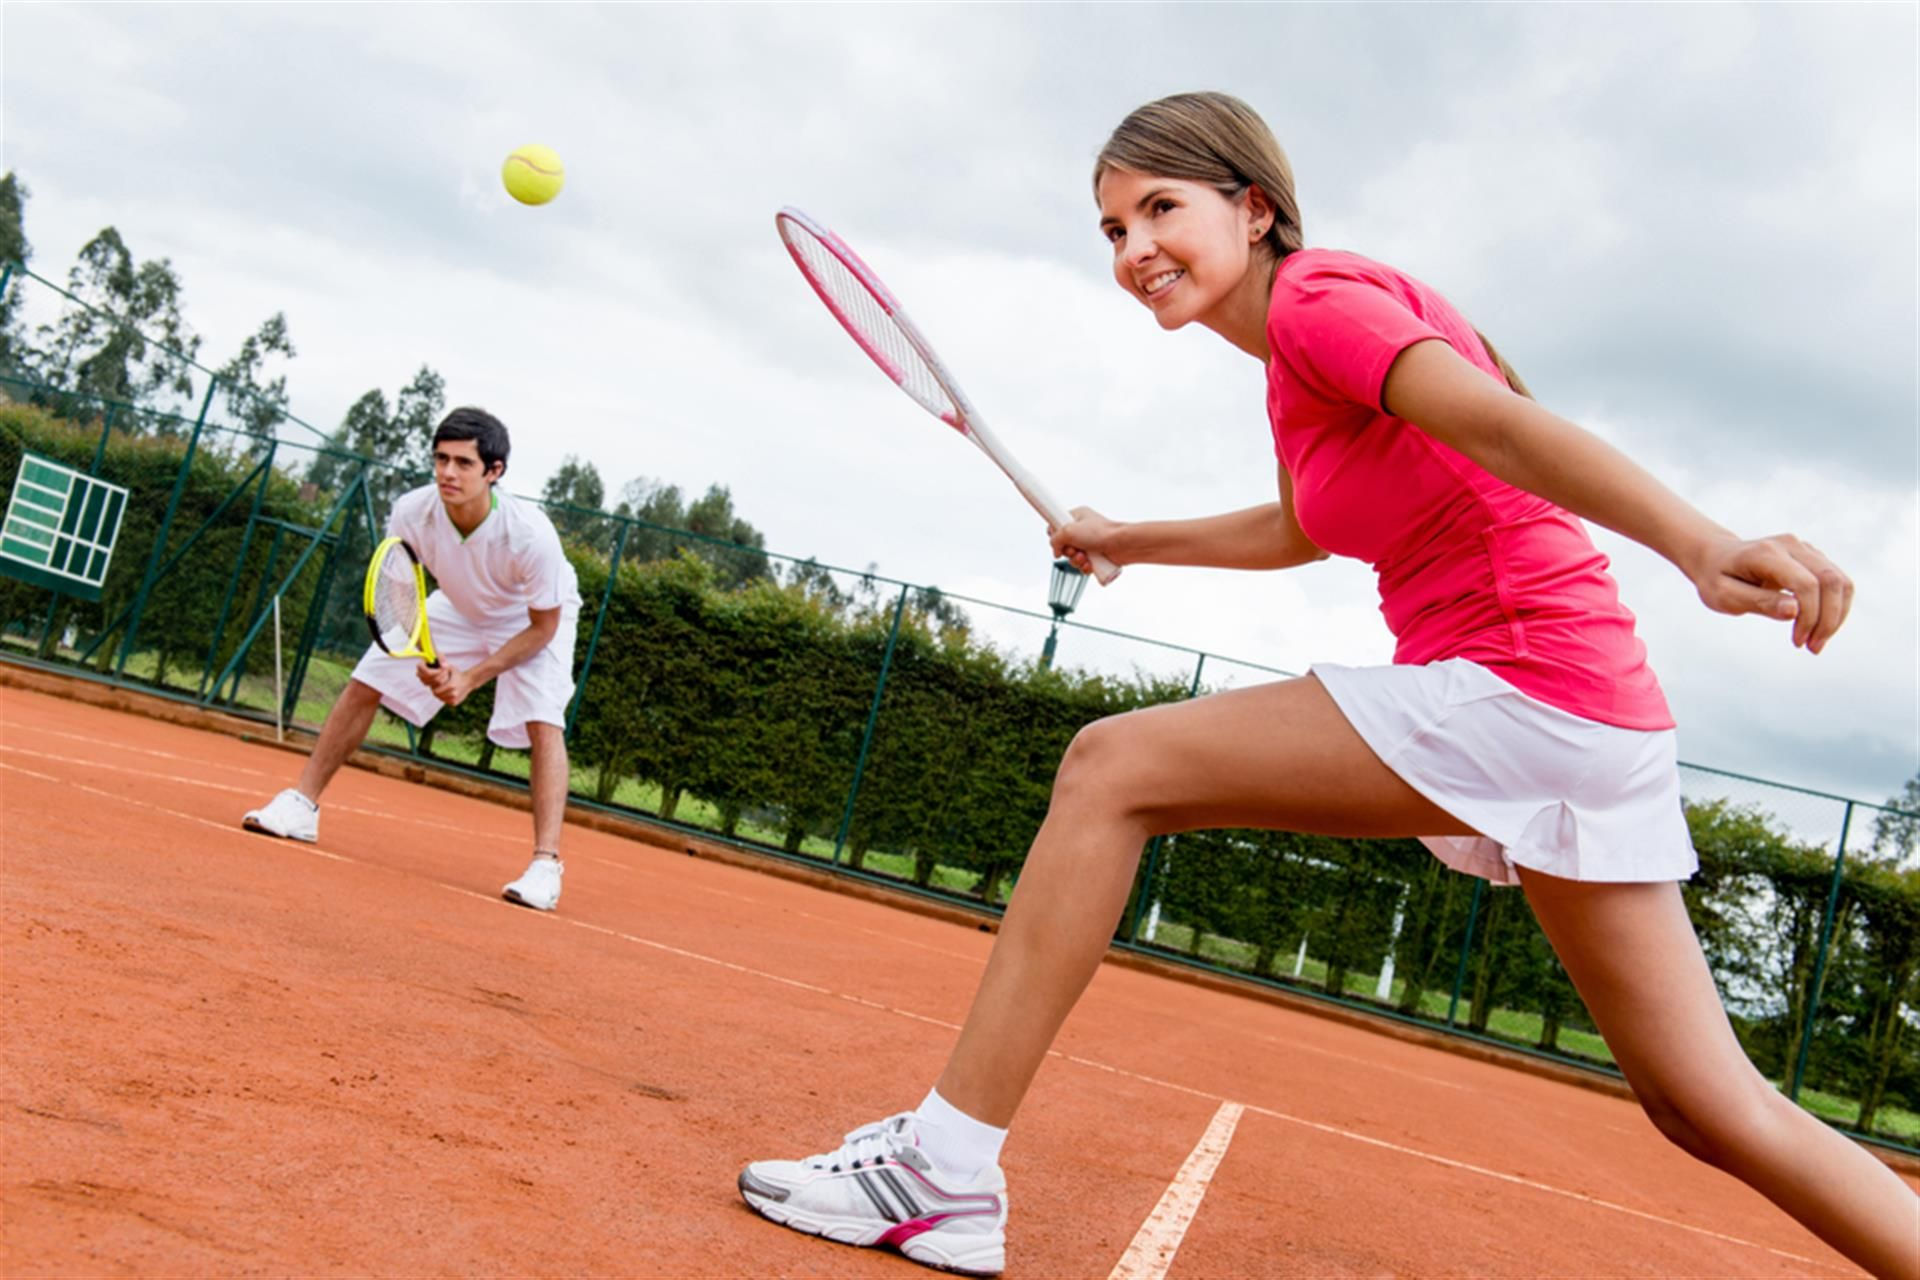 Pin by Marianne Sikes on Tennis Life Tennis workout